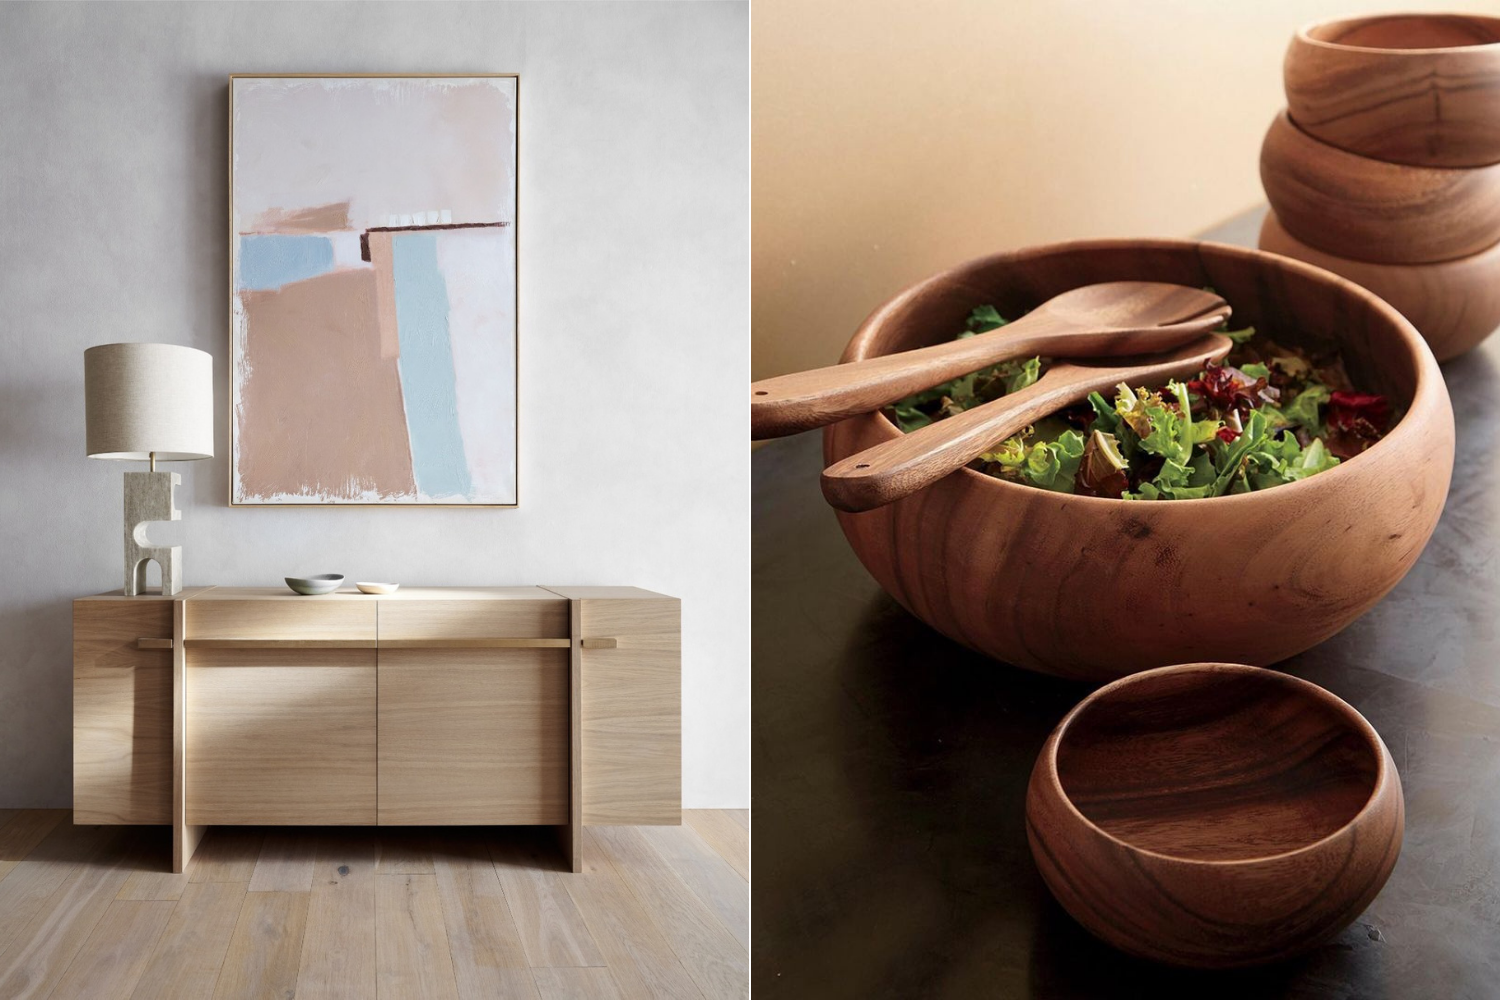 image23Where to buy furniture online in Singapore - Crate&barrel